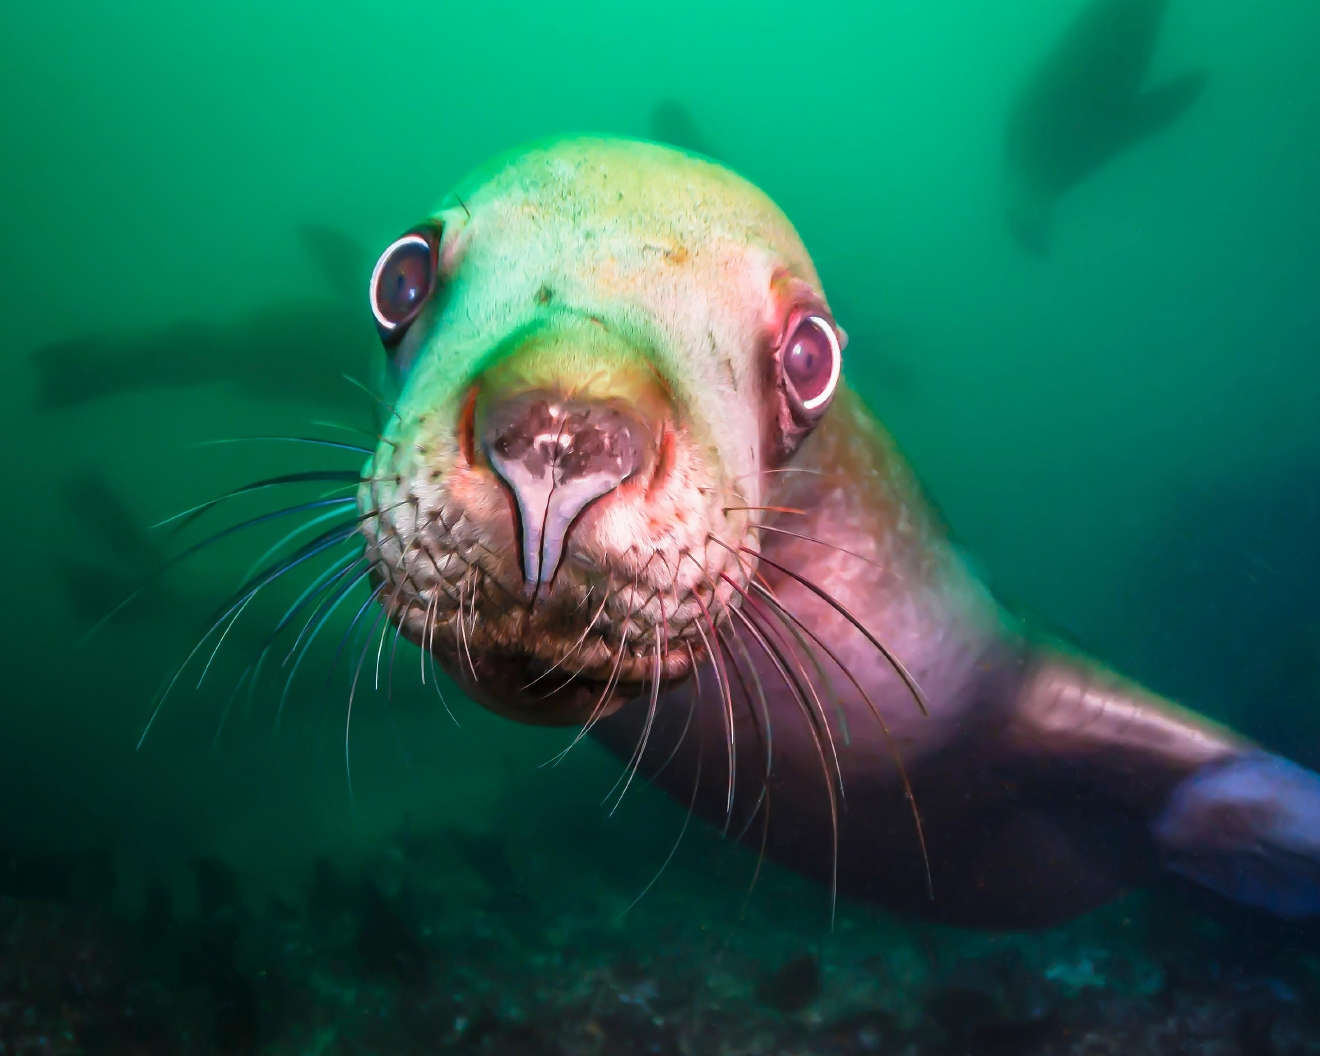 """I bought my first DSLR camera 8 years ago, and I began scuba diving a few months later. Four years ago I began to seriously wonder if my underwater shots of Puget Sound were beautiful enough and interesting enough to sell."" (Image: Drew Collins)"